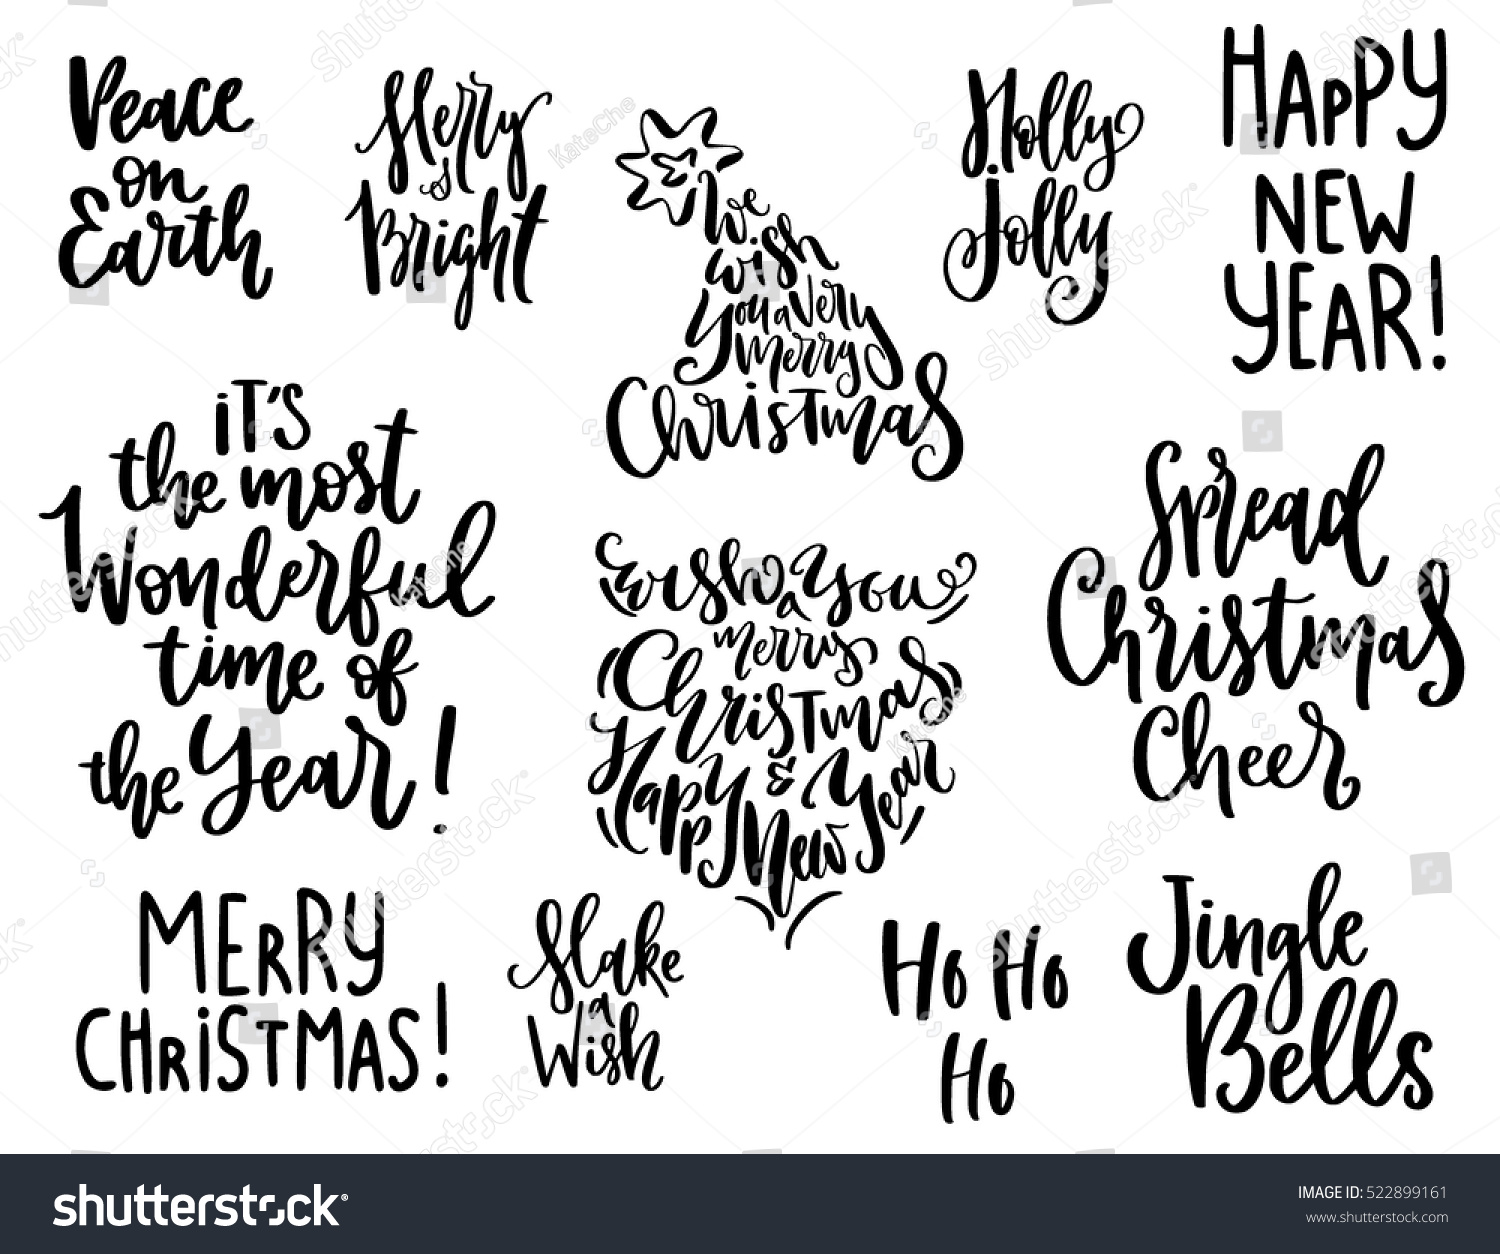 Quotes Christmas Set Handwritten Christmas Quotes Wishes Modern Stock Vector